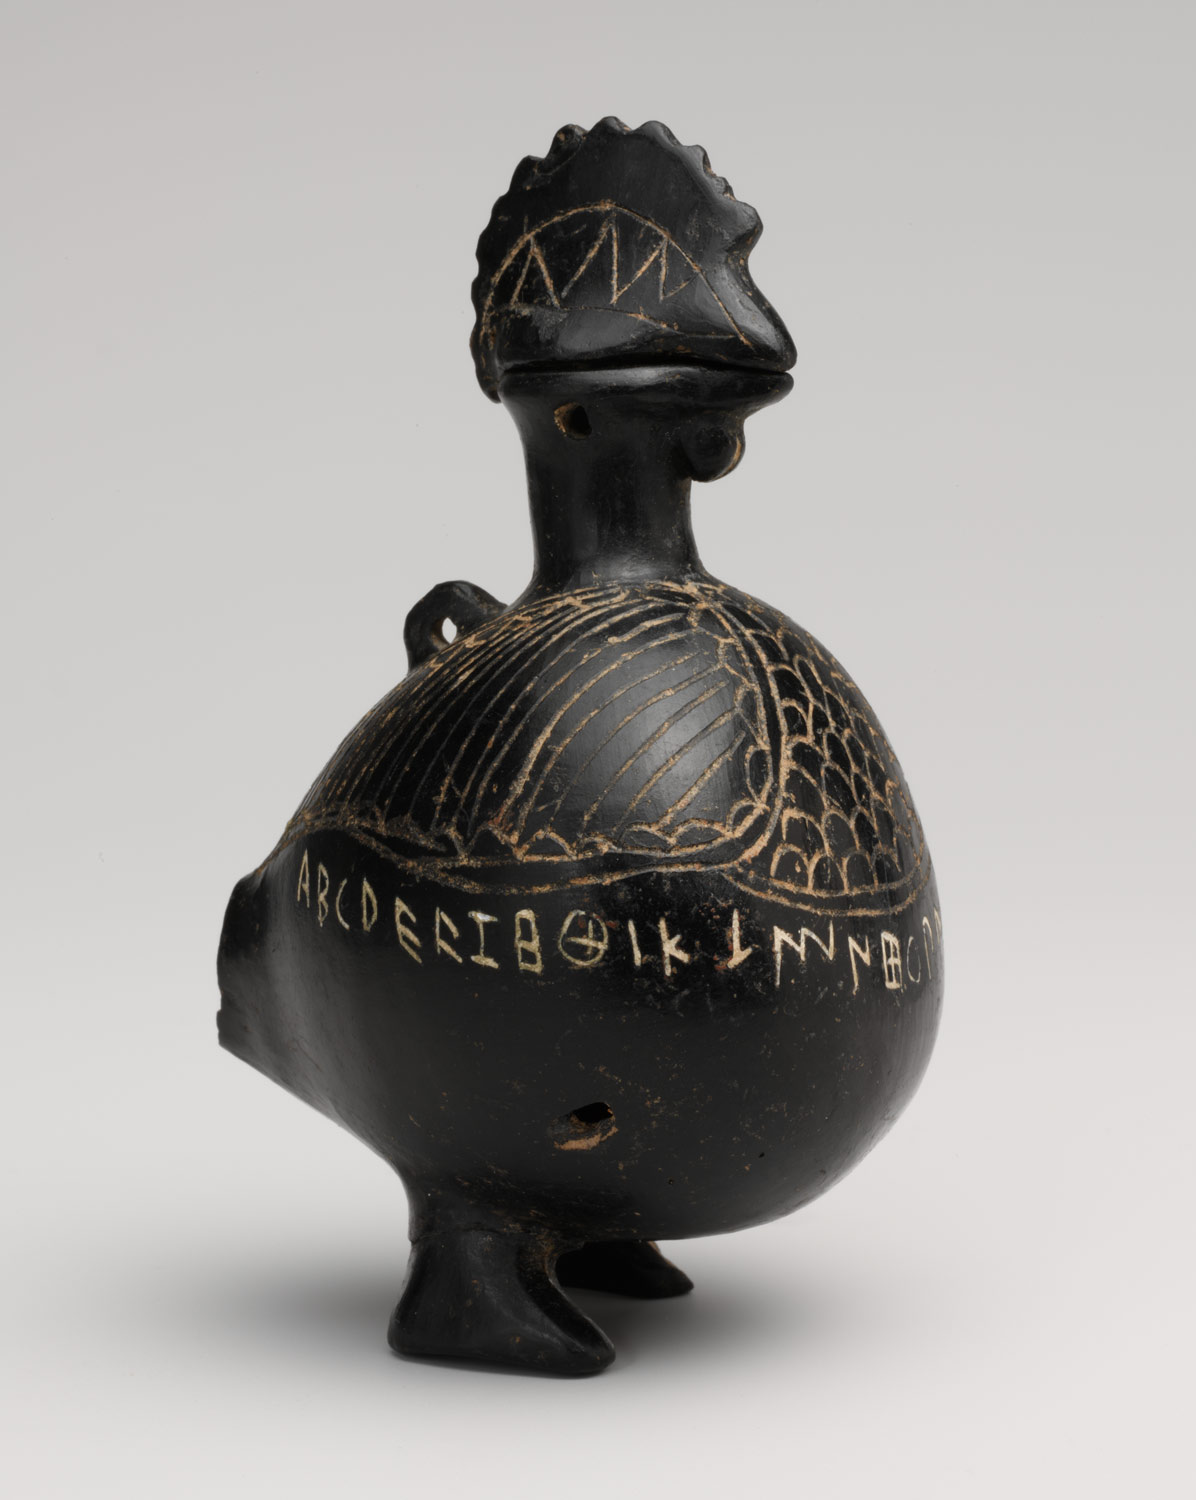 Vase in the shape of a cock